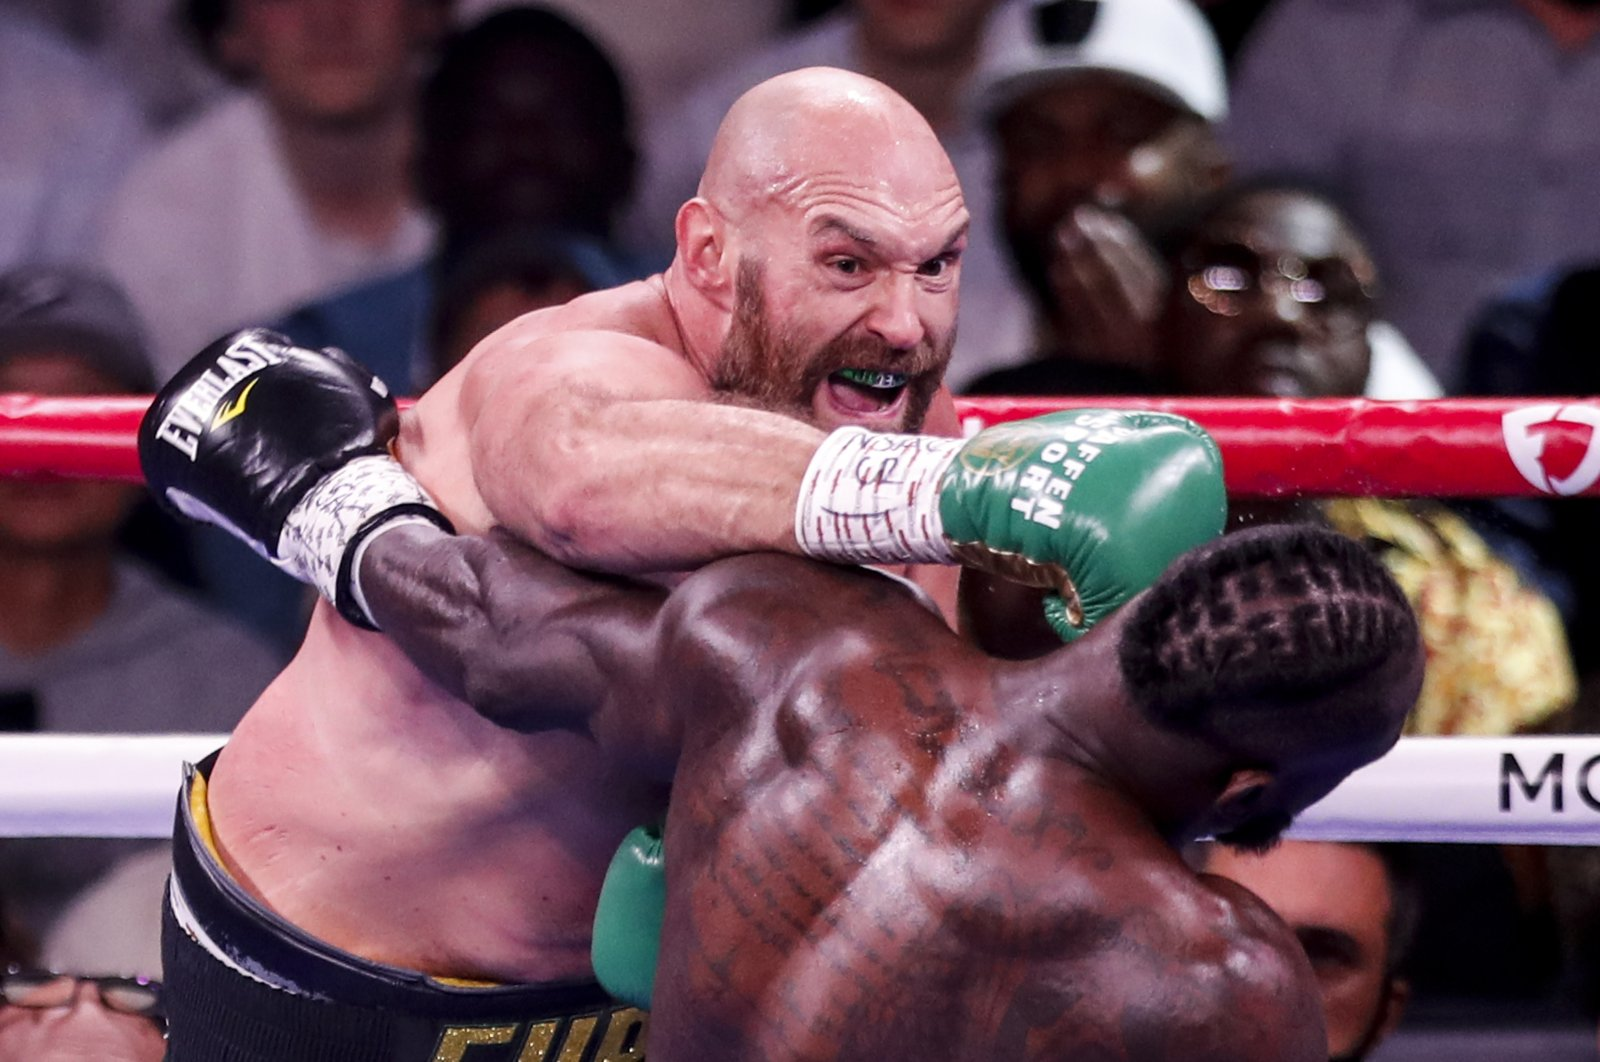 Britain's Tyson Fury (L) in action against U.S. boxer Deontay Wilder during their 12 rounds WBC heavyweight world championship title fight in Las Vegas, Nevada, U.S., Oct. 9, 2021. (EPA Photo)